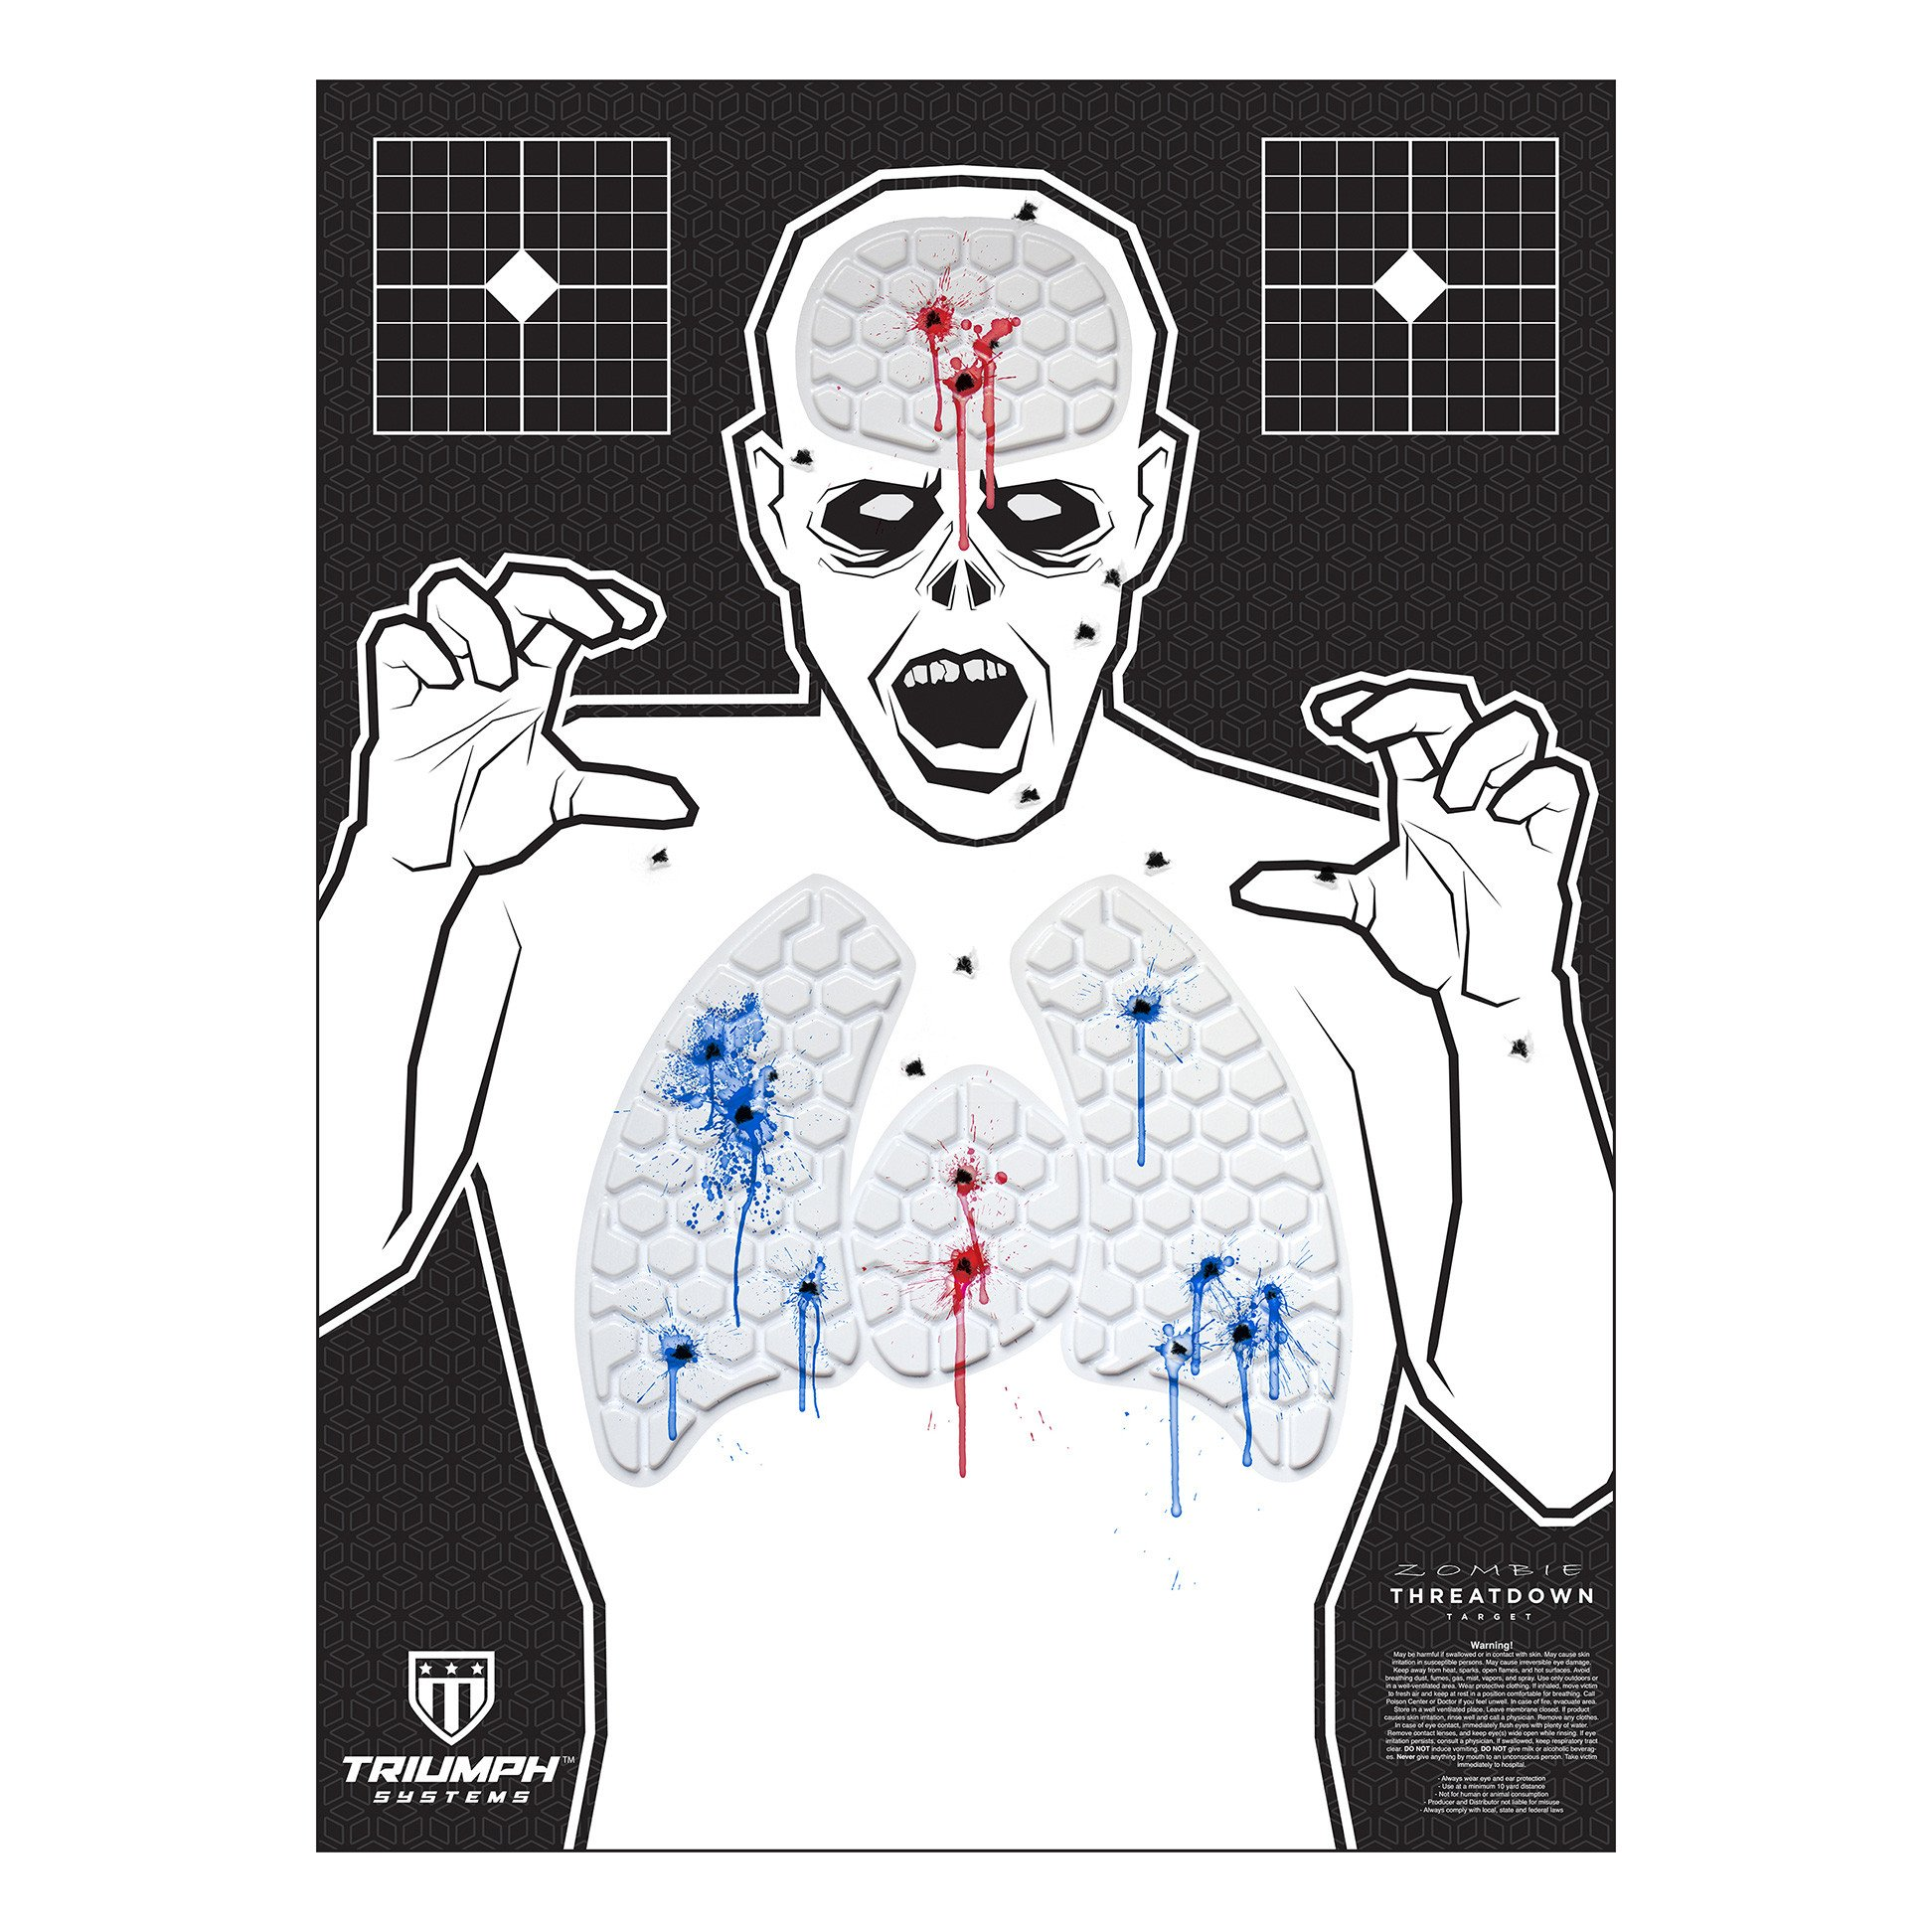 Threat Down Zombie Silhouette | Reactive Target | Shooting Target | Reactive Splatter Cells | Air